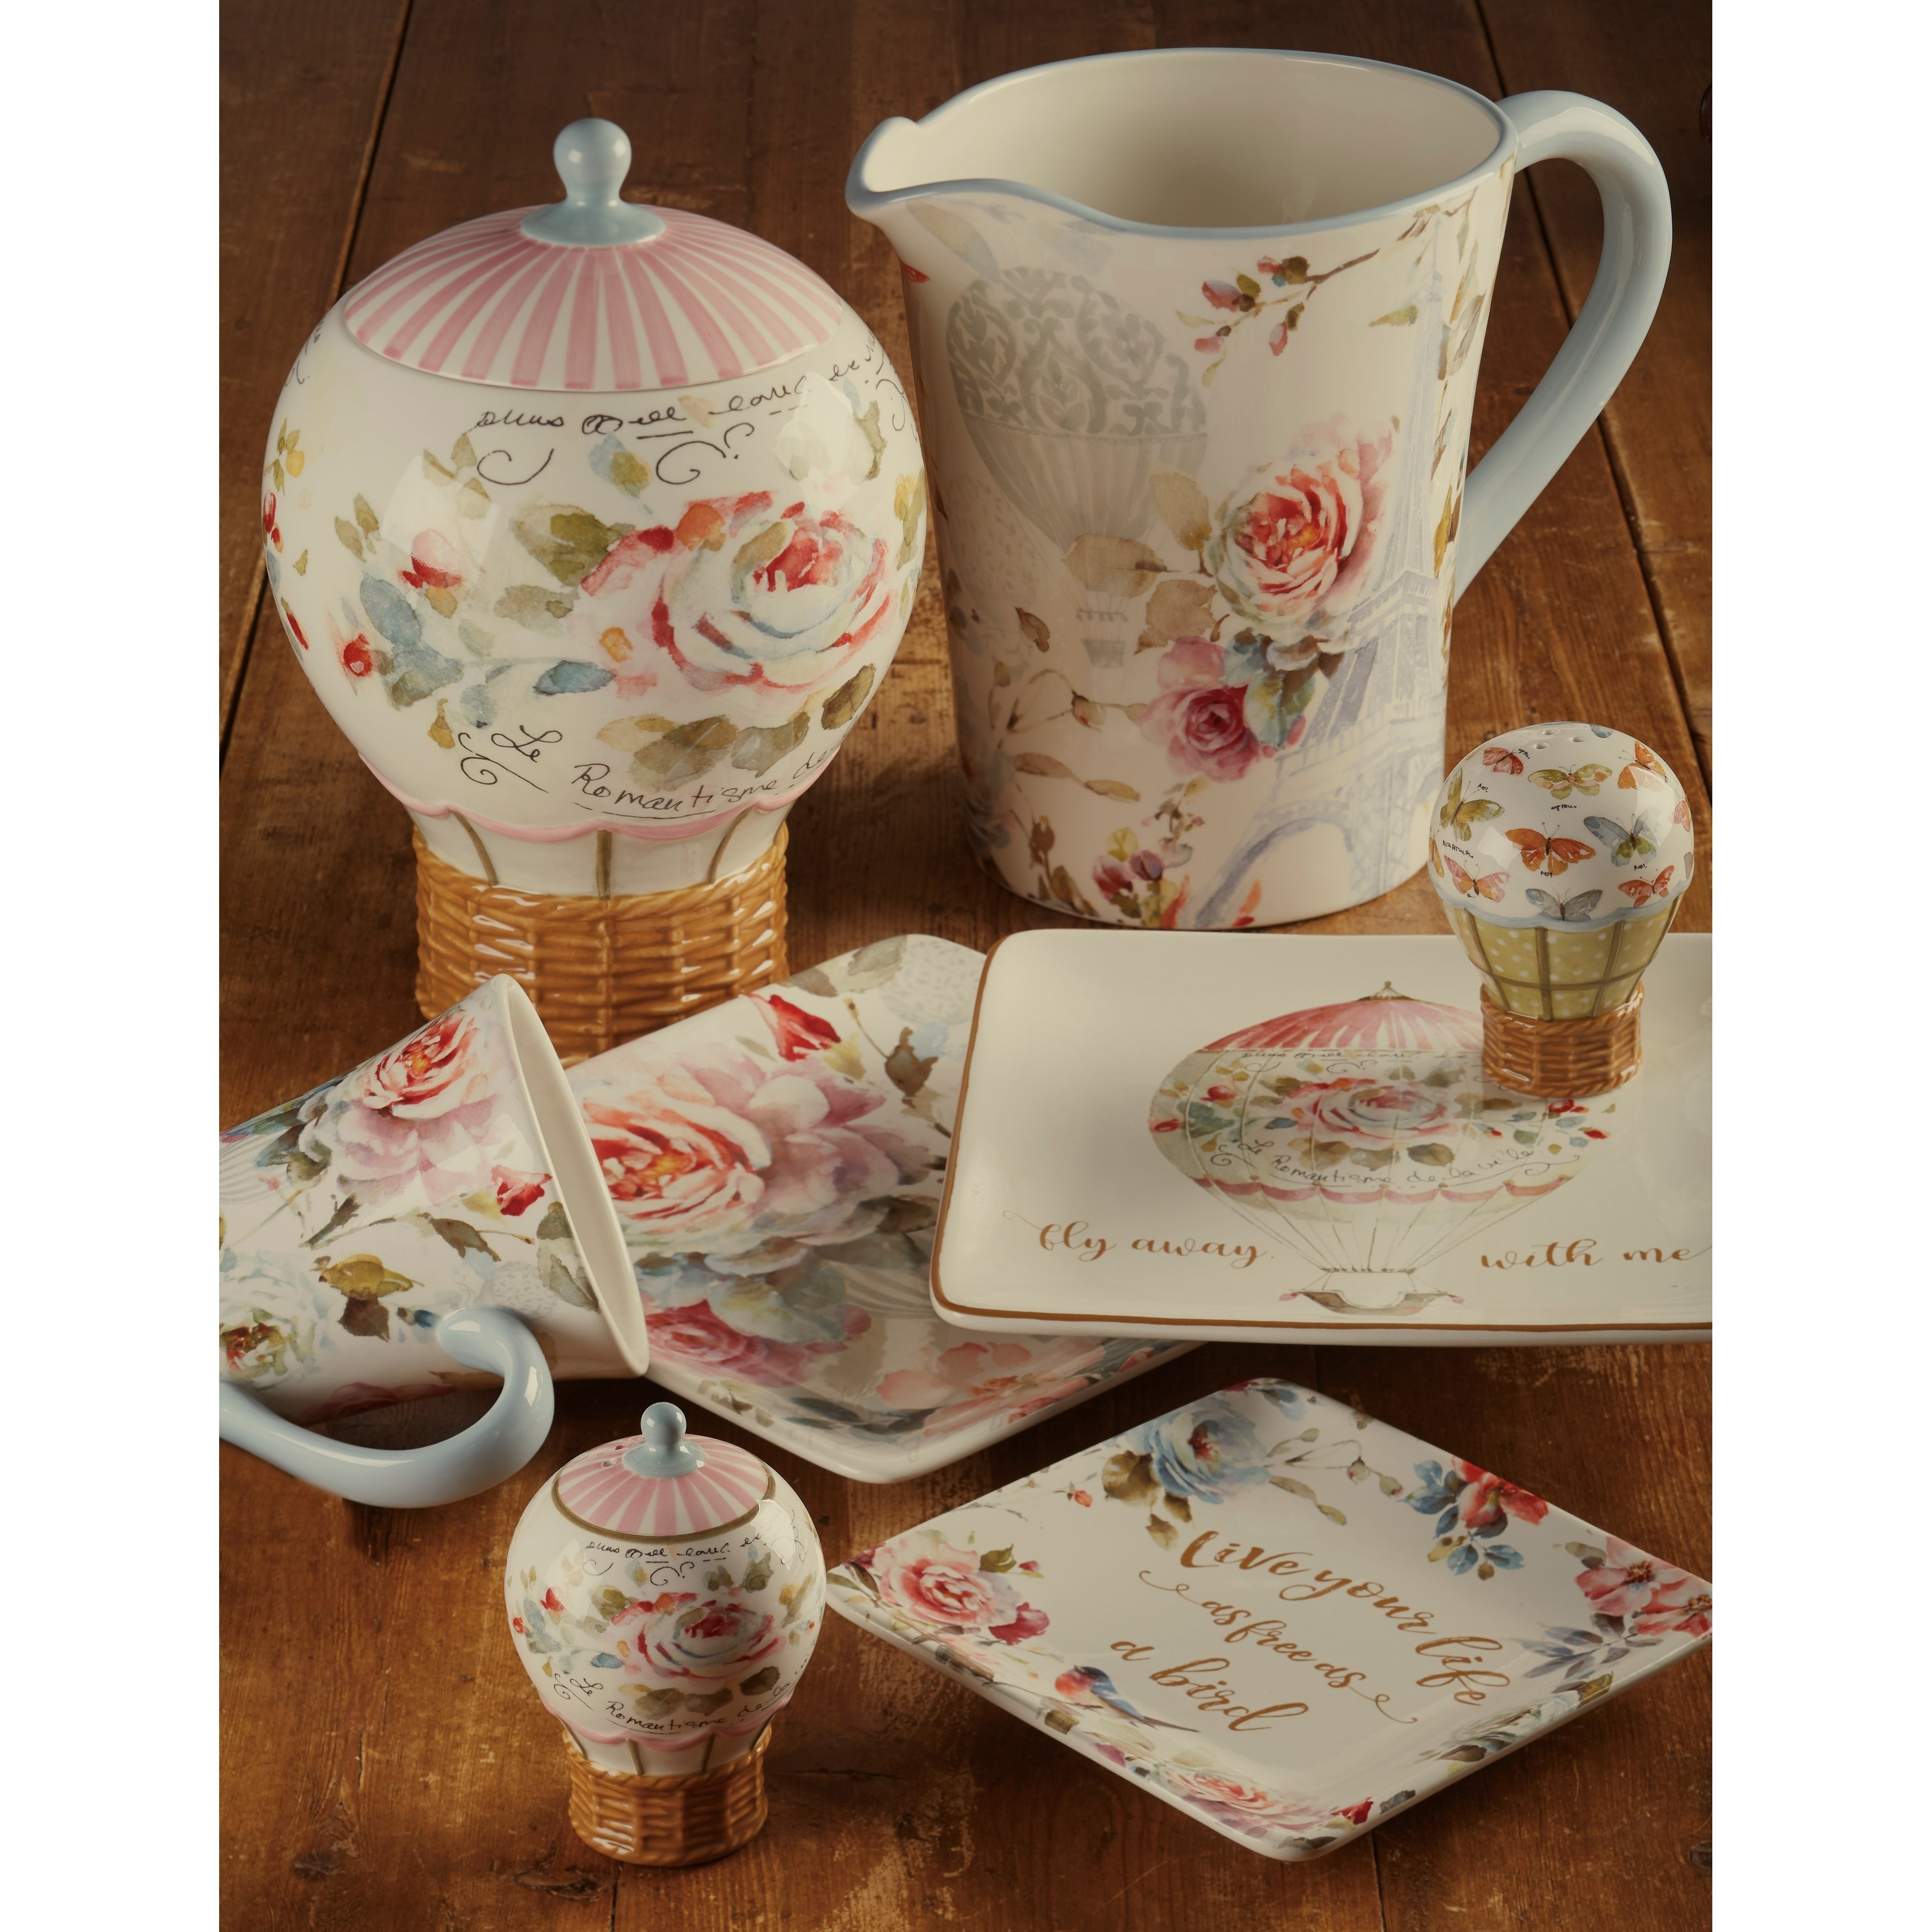 62db42158fc Shop Certified International Beautiful Romance 14-ounce Mugs (Set of 4) -  Free Shipping On Orders Over $45 - Overstock - 19985333